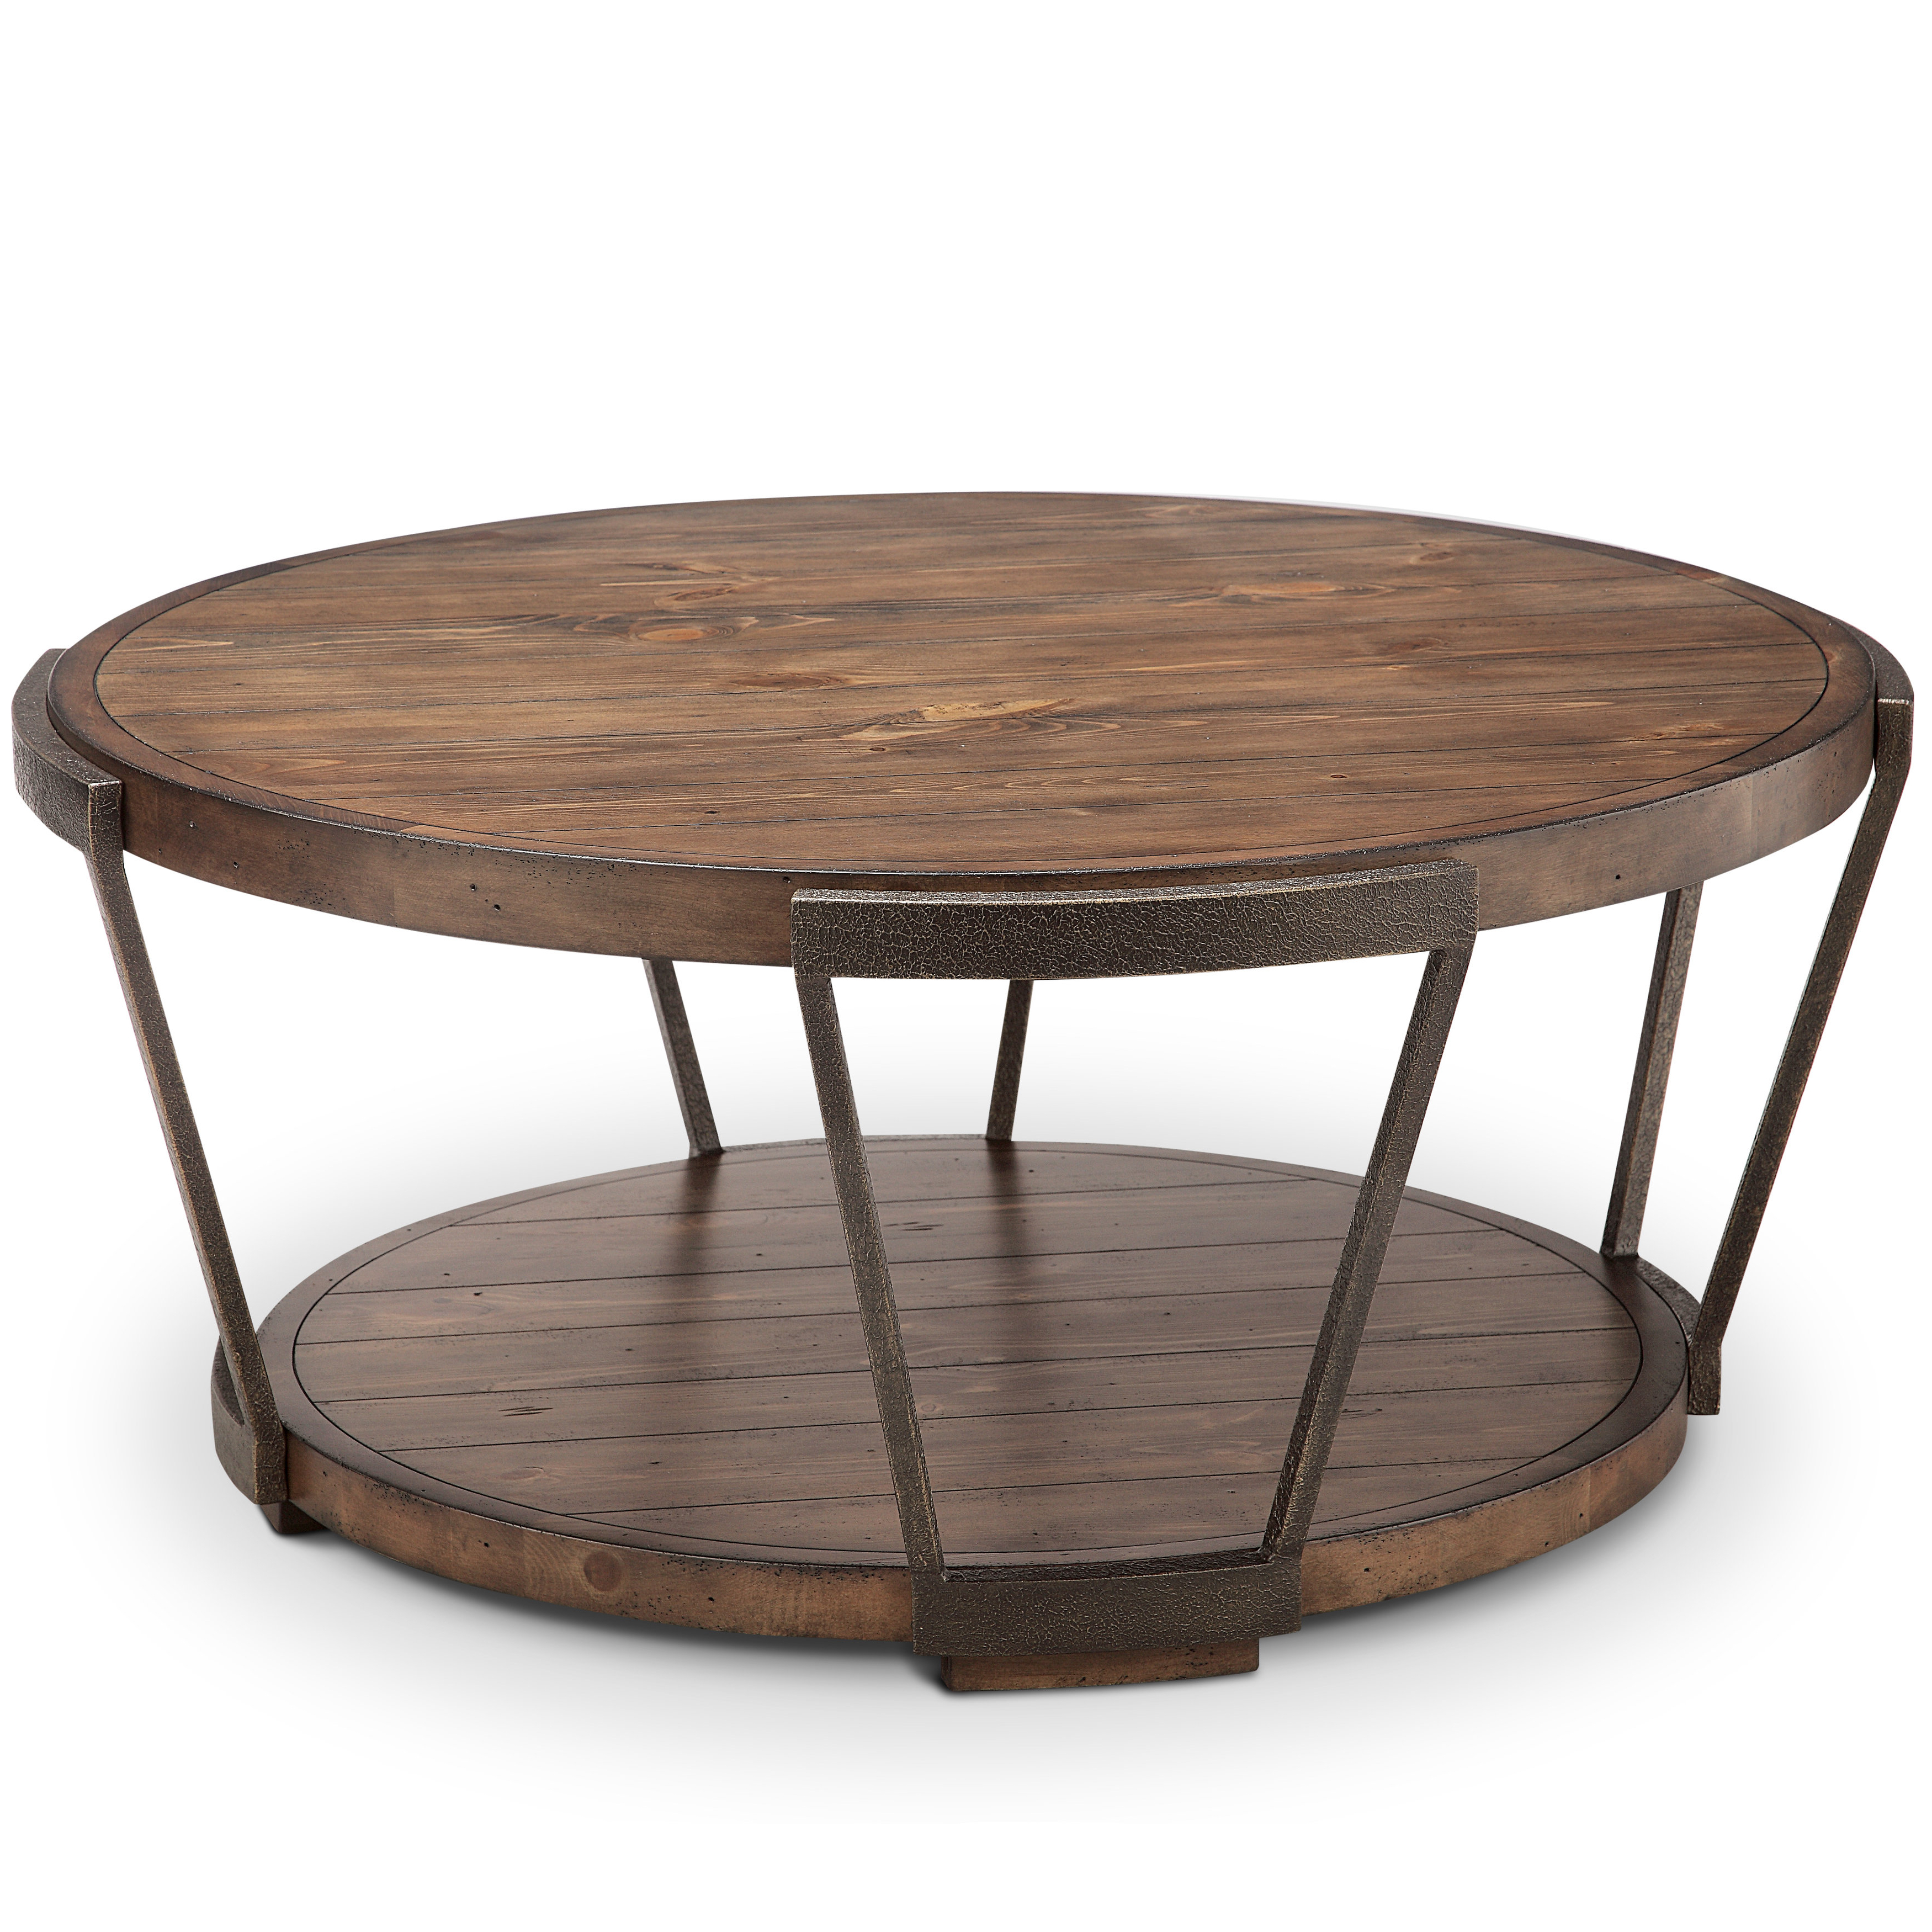 Wayfair Pertaining To Most Up To Date Carbon Loft Witten Angle Iron And Driftwood Coffee Tables (View 18 of 20)